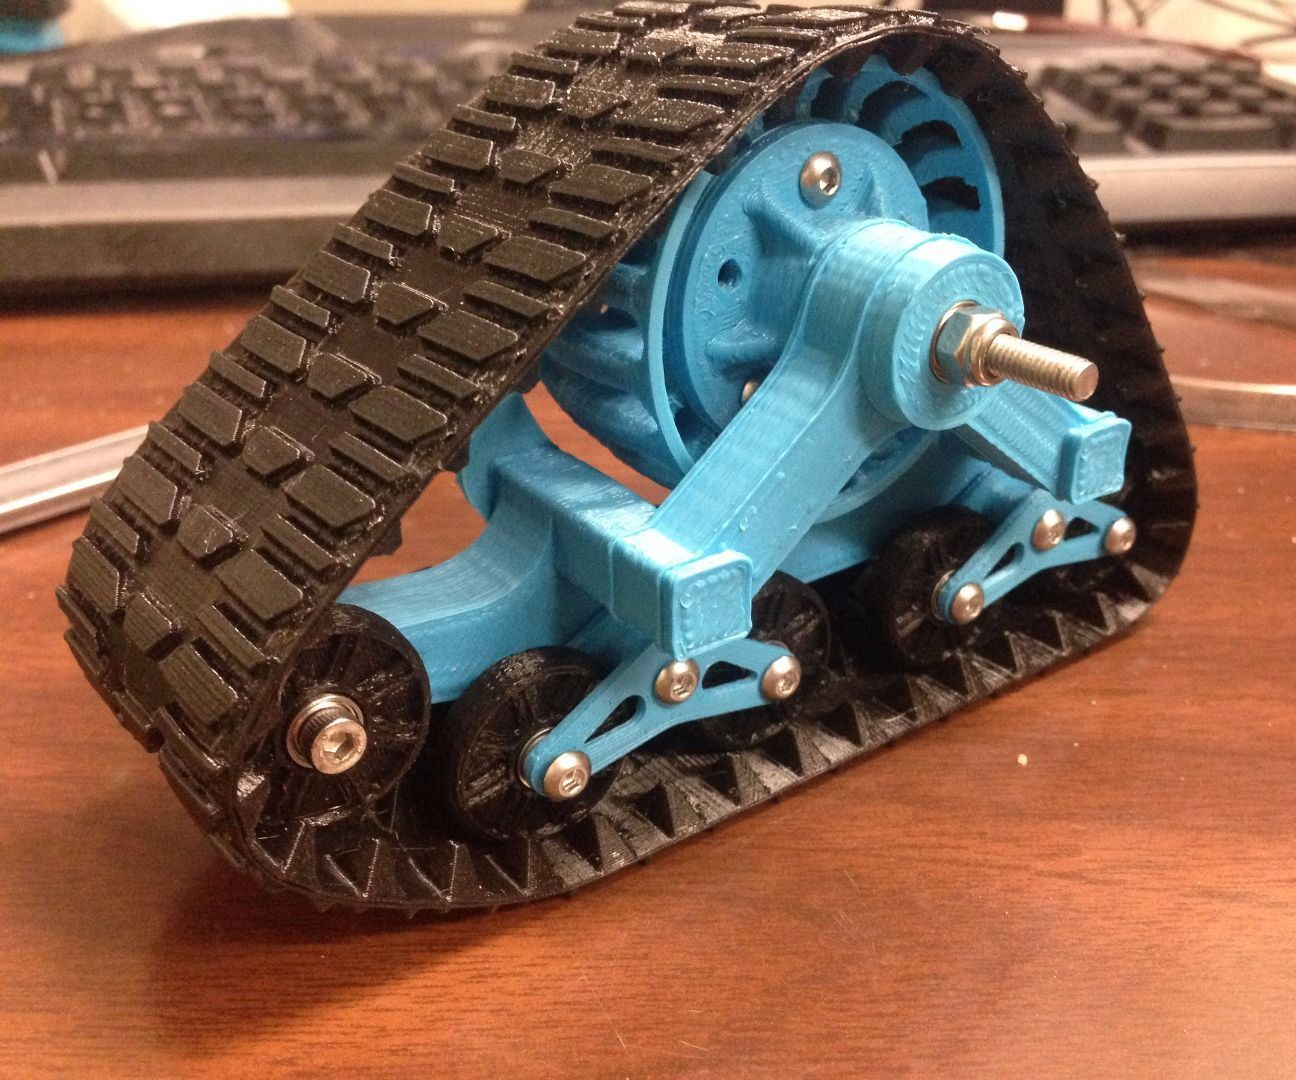 3D Printed MatTracks for RC Car in 1/10 Scale 3d